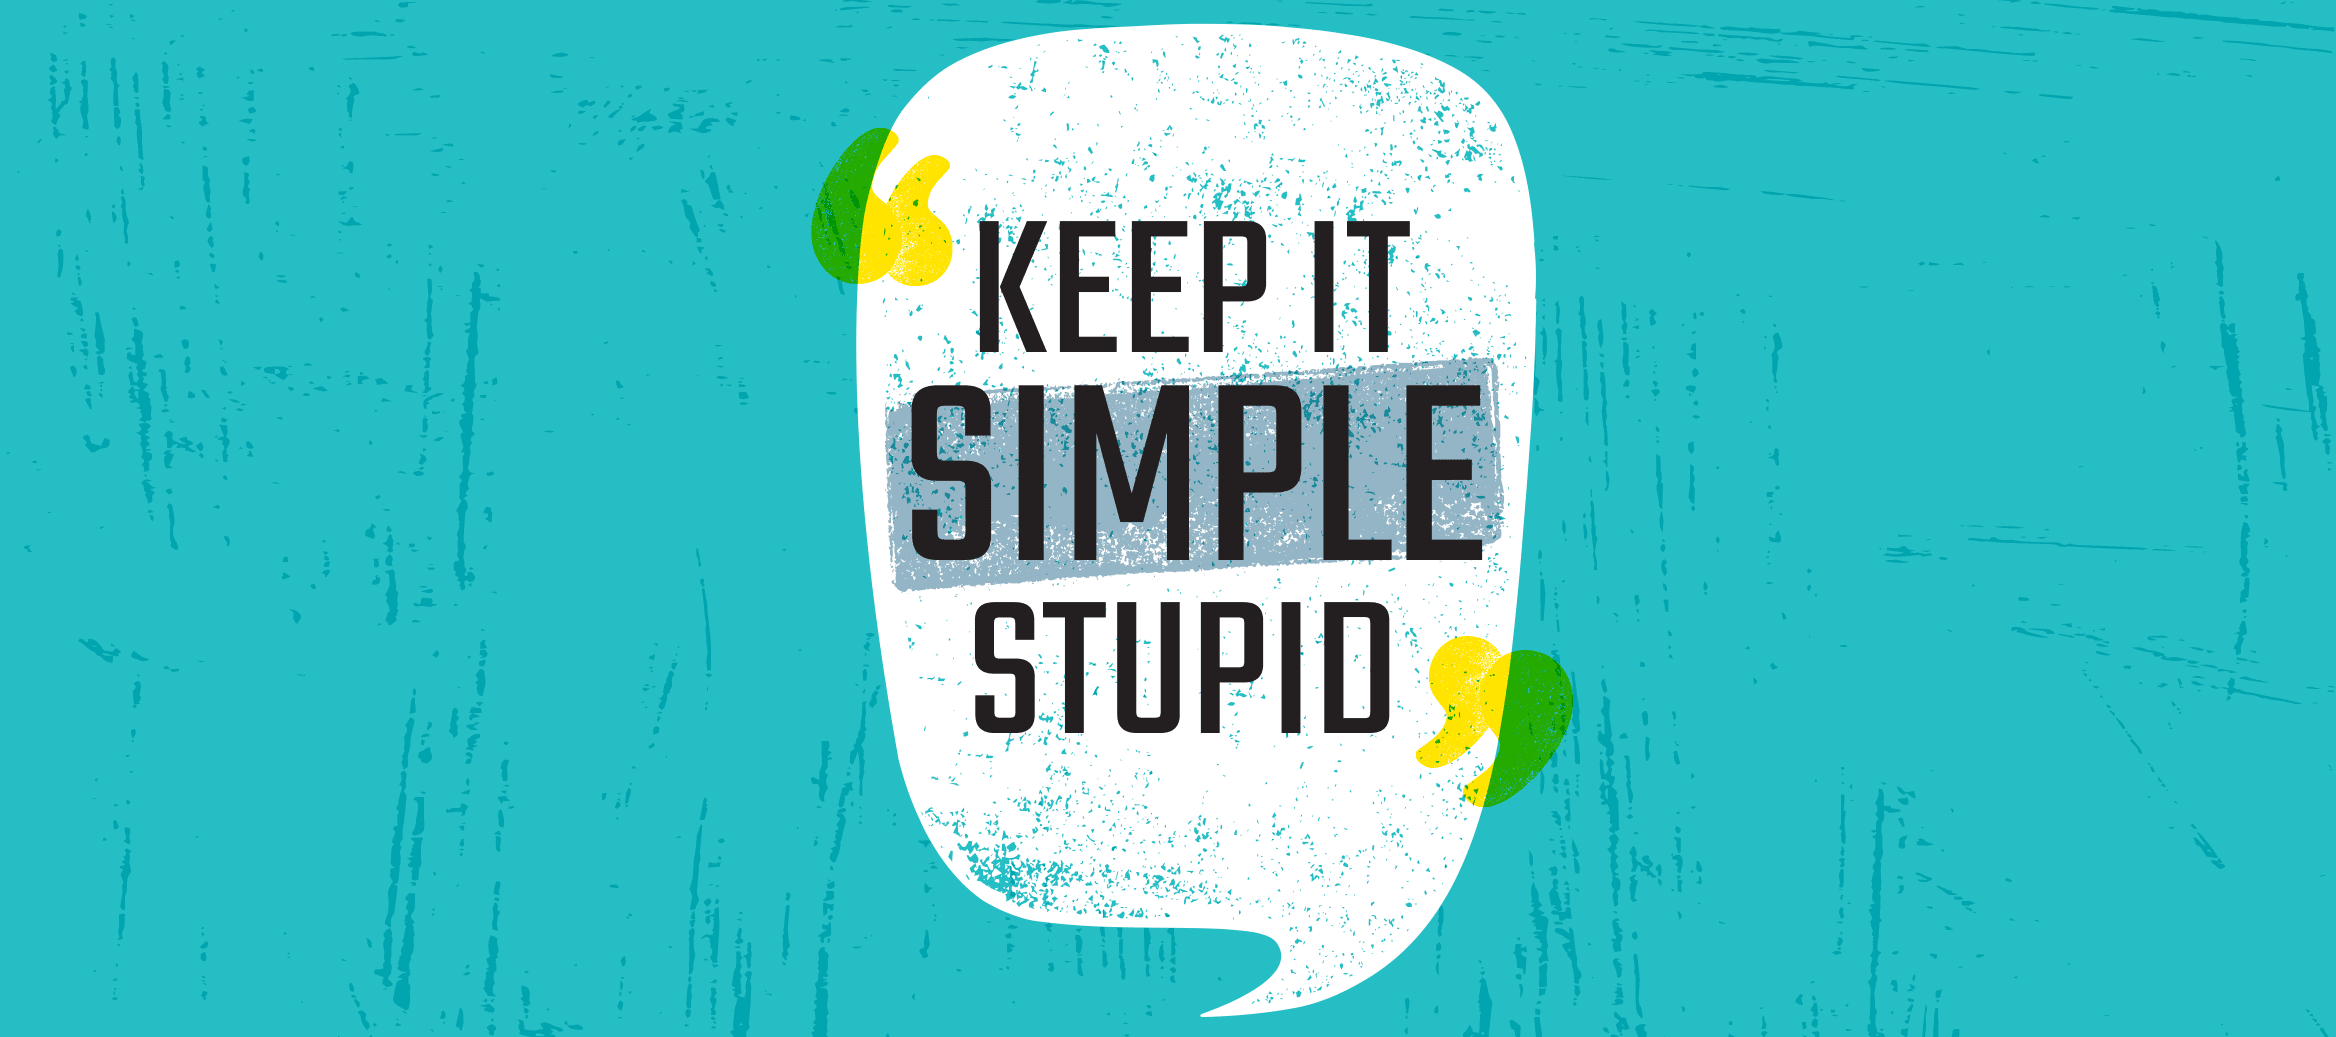 Keep it simple stupid graphic